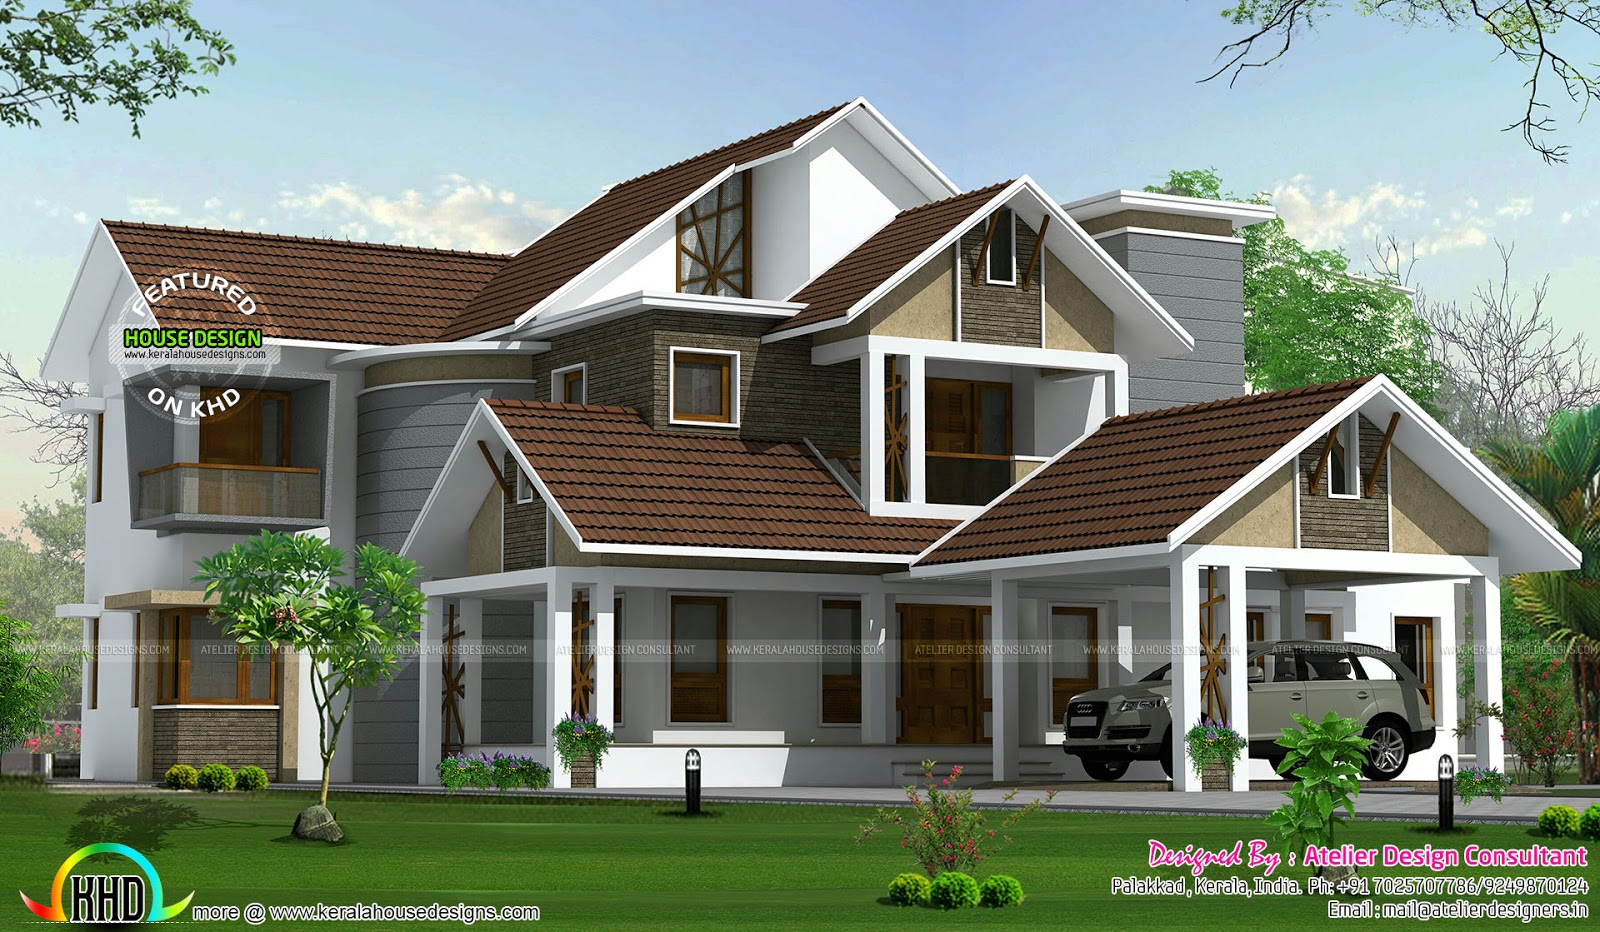 Beautiful slope roof home kerala home design and floor plans for Beautiful kerala home design